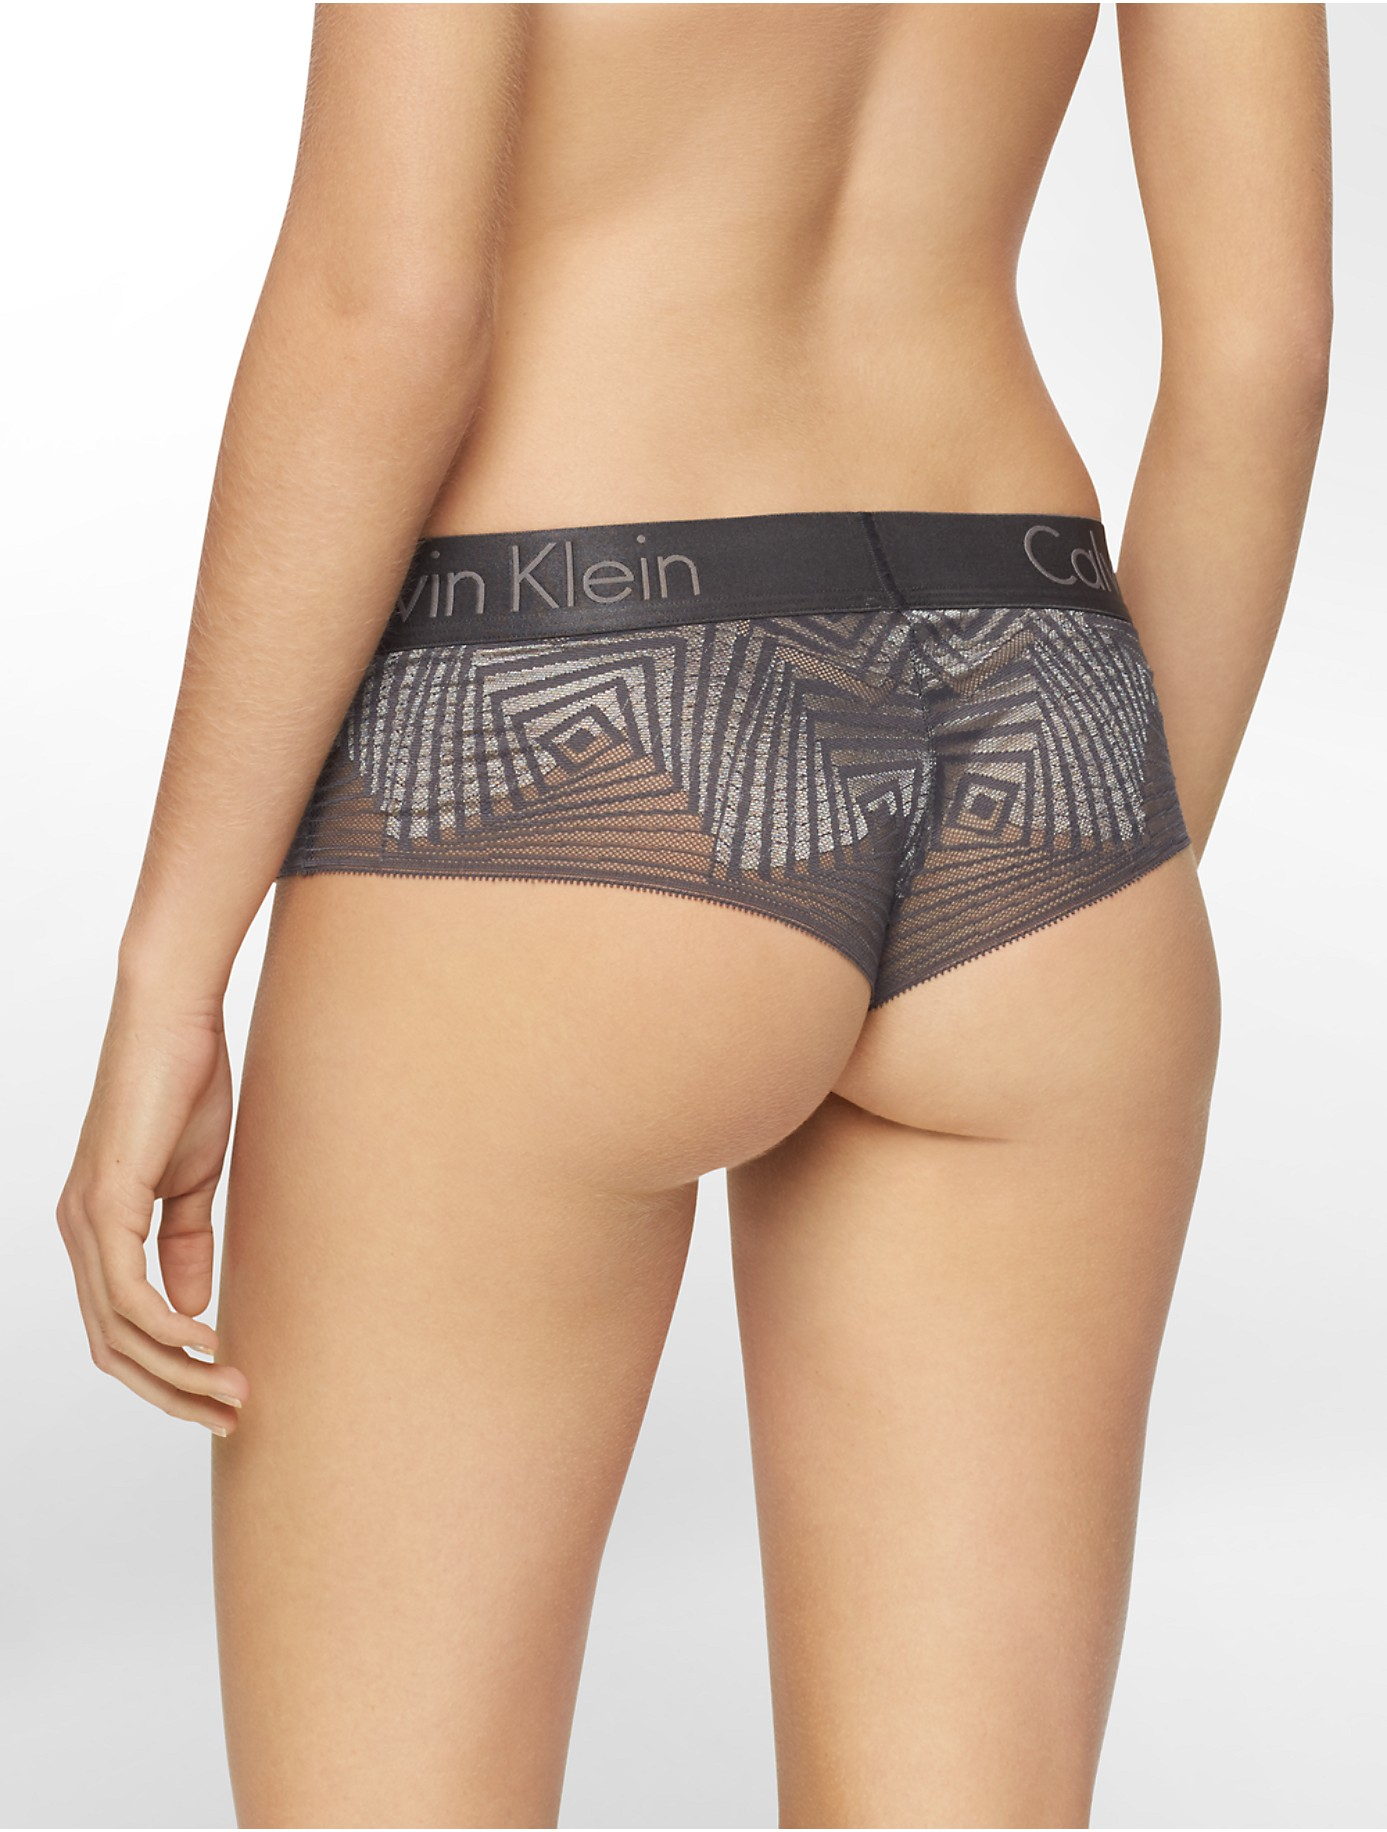 Calvin klein Underwear Dual Tone Lace Hipster in Gray | Lyst